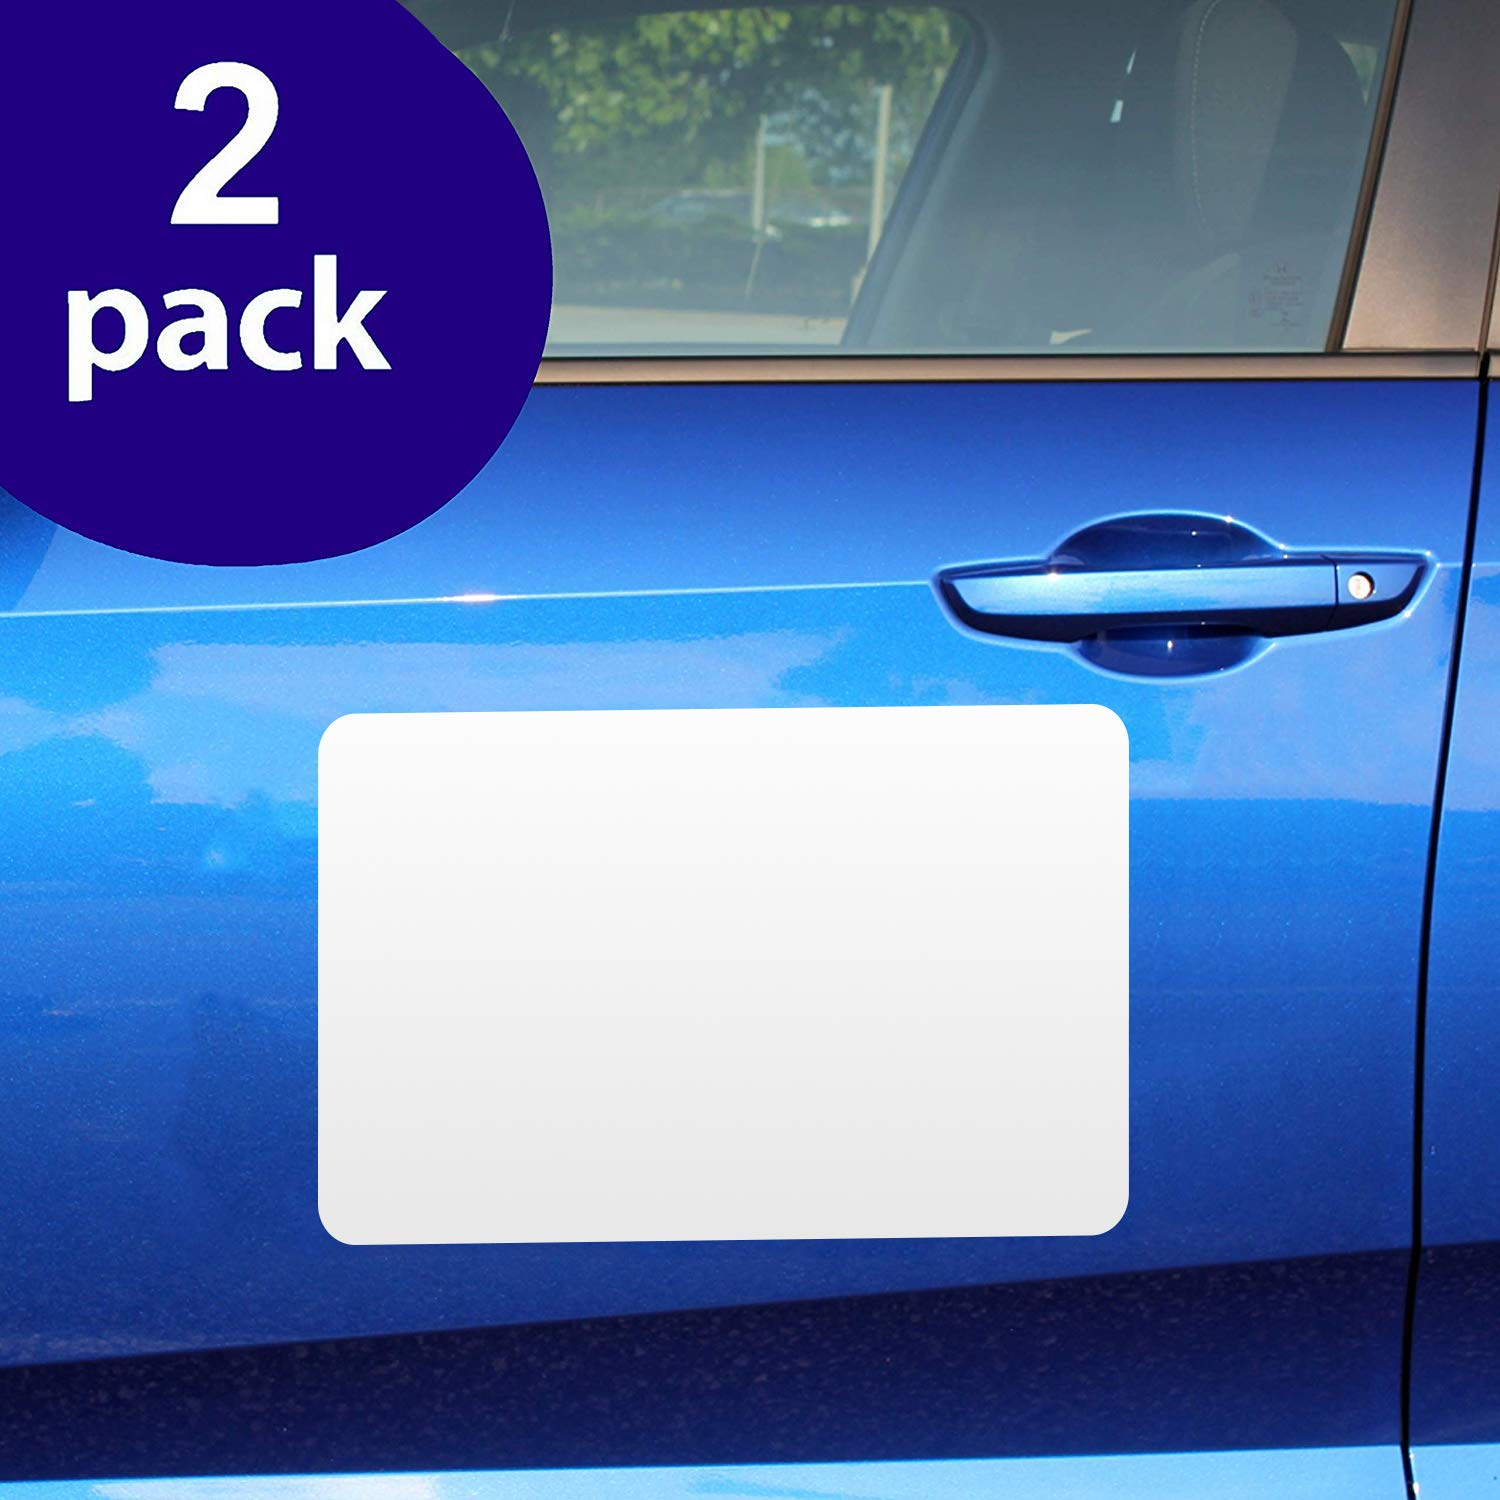 for HOA Cover Company Logo 2 Pack Perfect Magnet for Car to Advertise Business Small Rounded Corners Blank Car Magnet Set New! Prevent Car Scratches /& Dents Blank Magnets